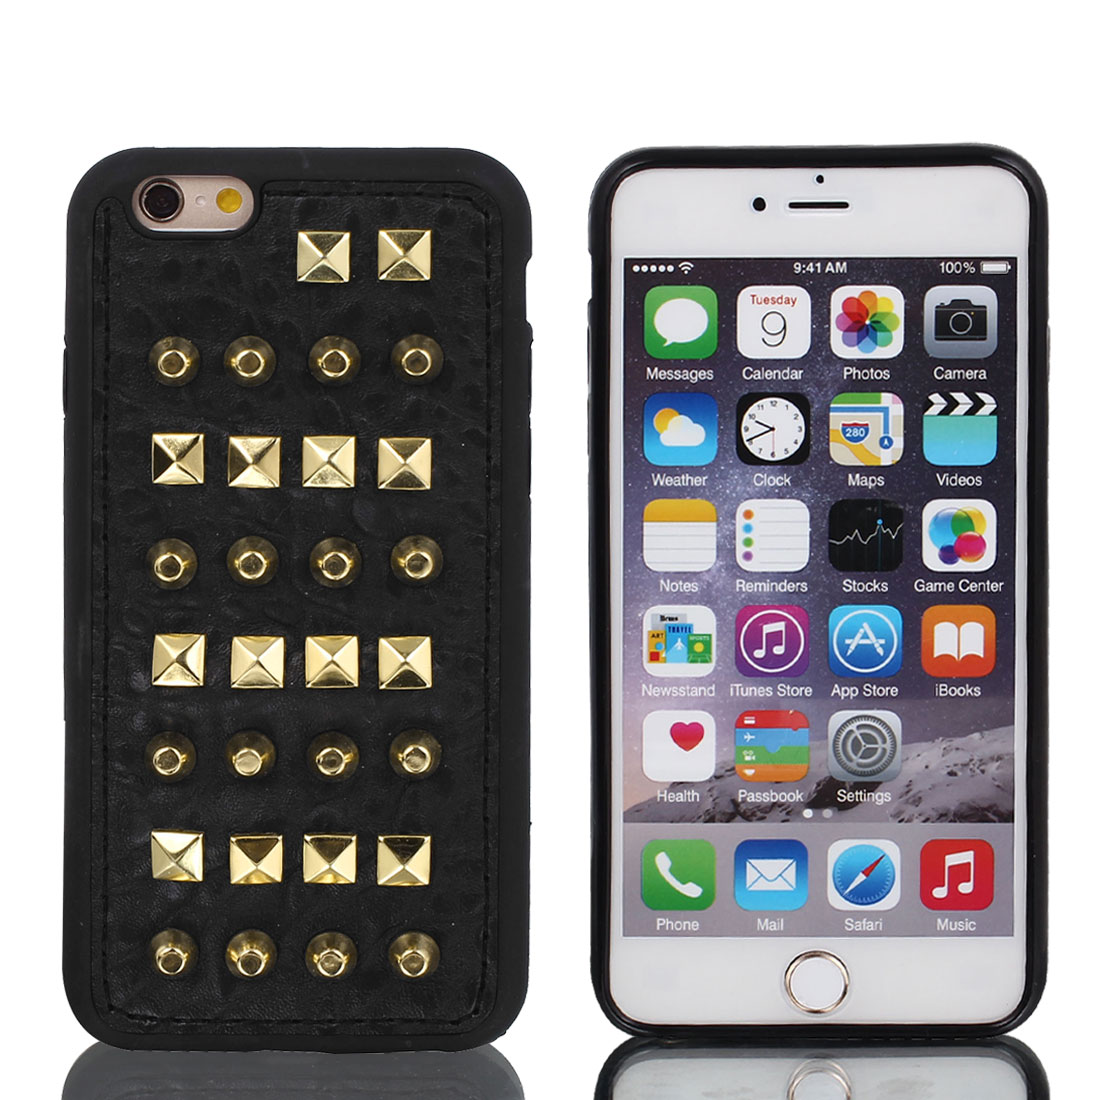 Faux Leather Rivet Protective Shell Case Cover Black w Film for iPhone 6 4.7""